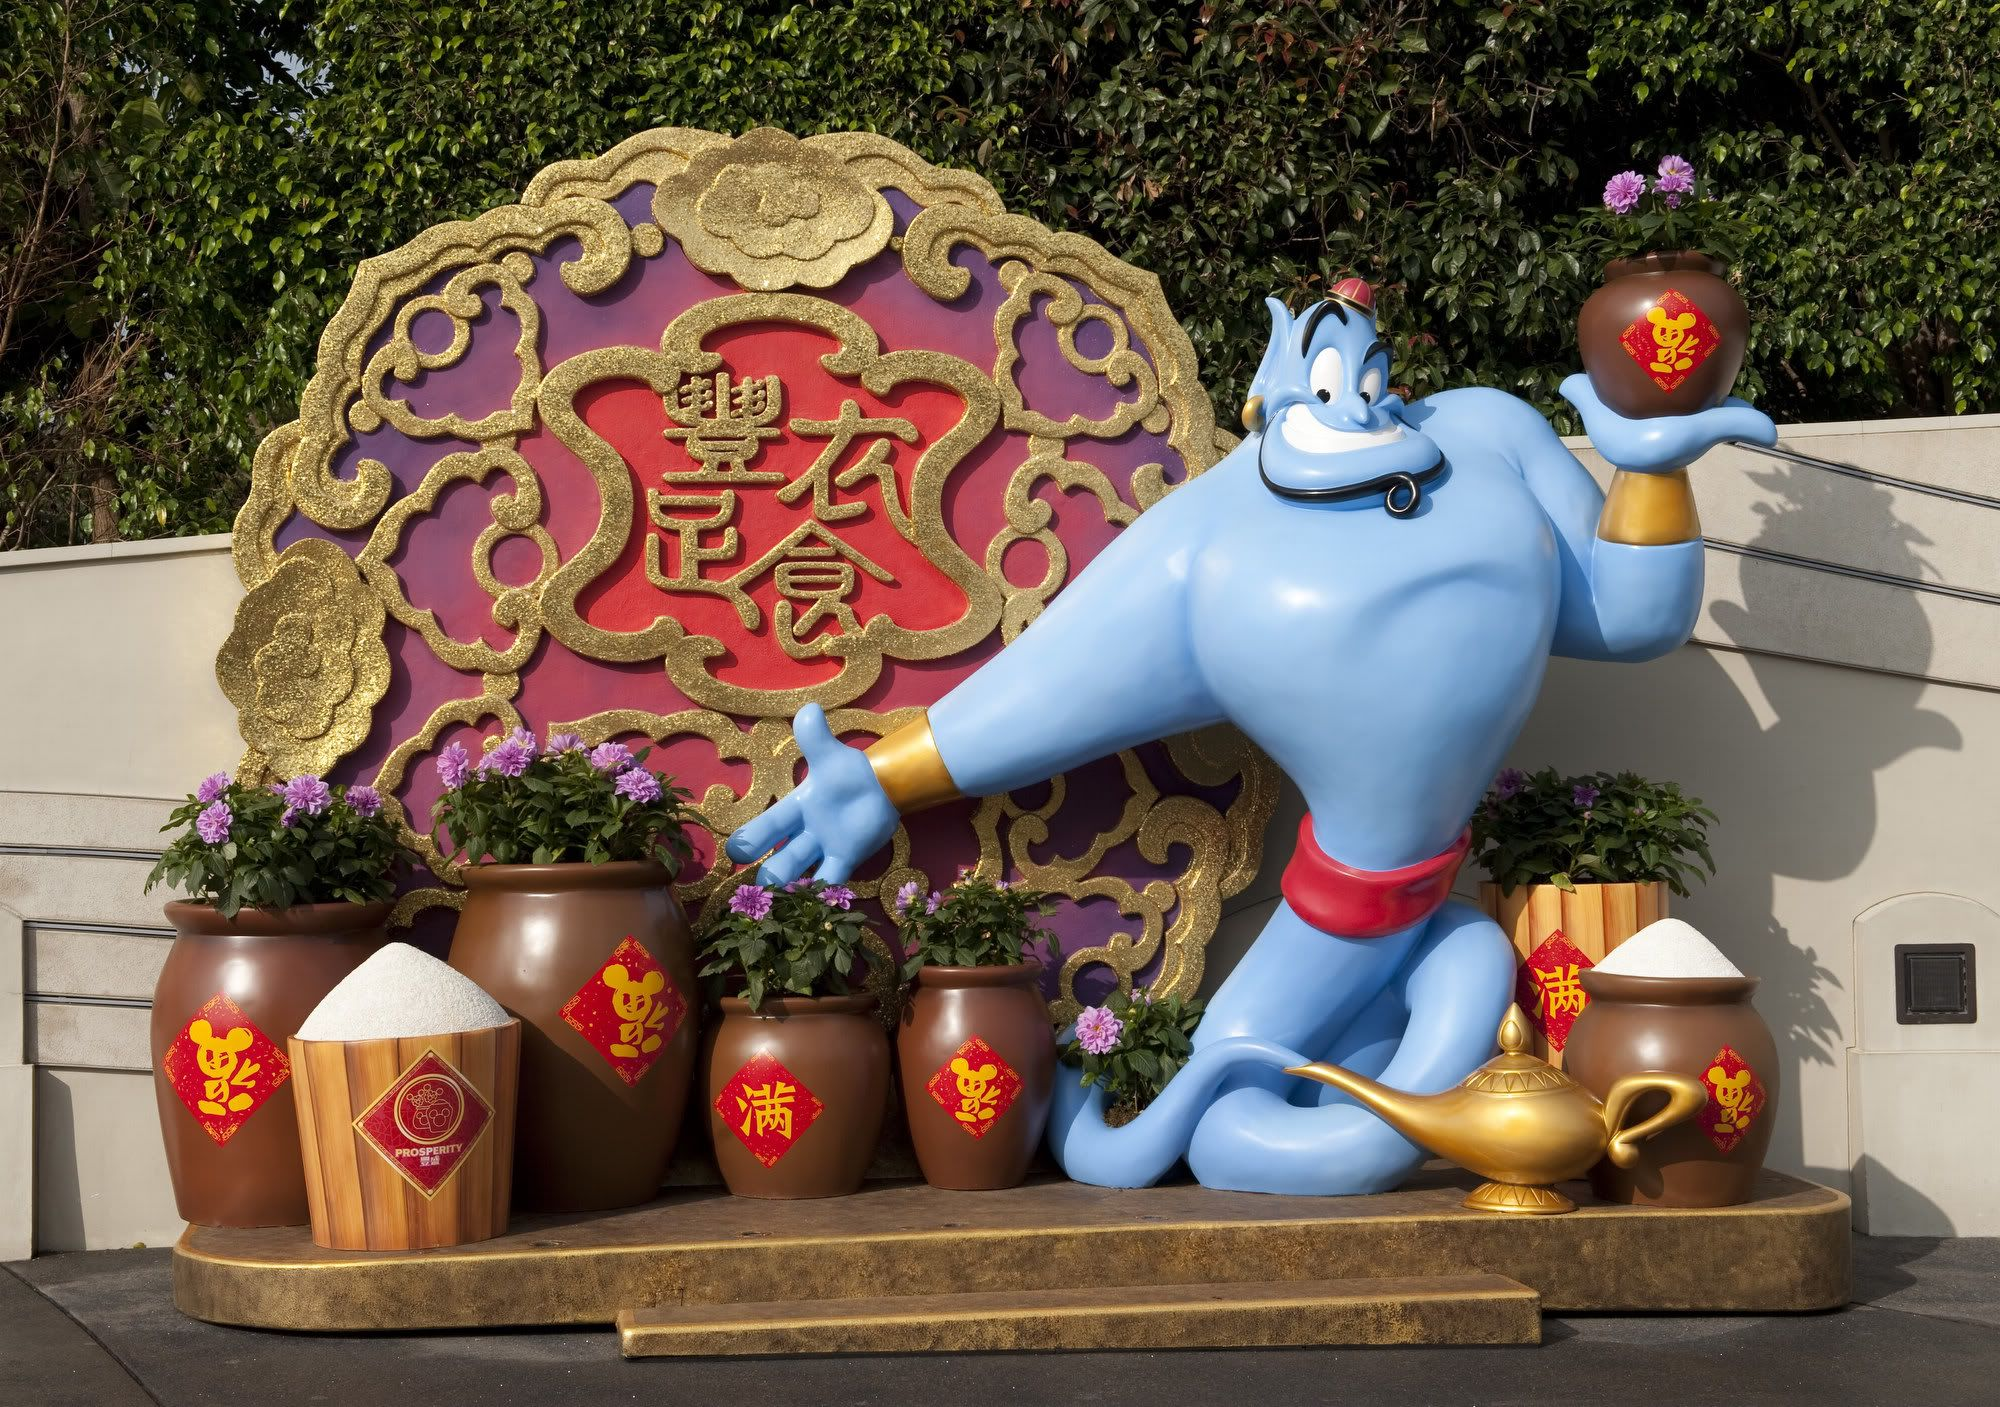 Drum rolls begin at Hong Kong Disneyland for the Chinese